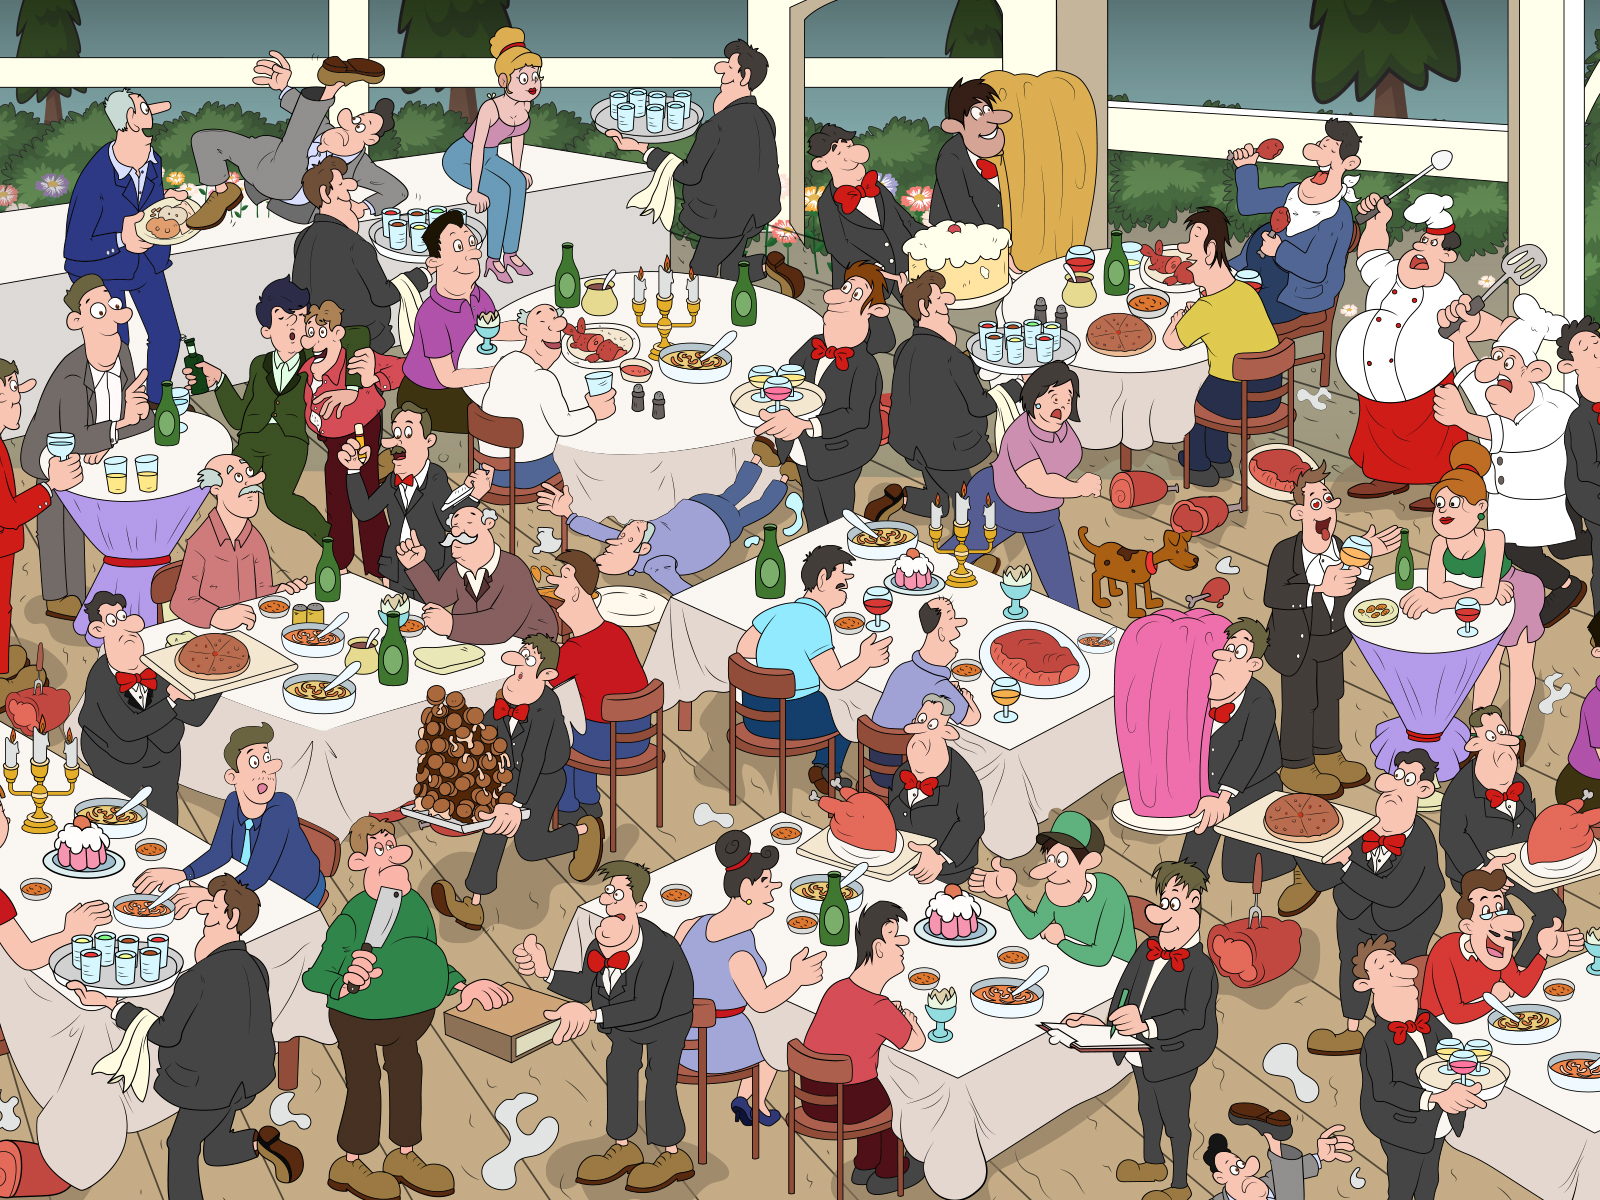 Busy Restaurant scene for Puzzle by Shallu Narula on Dribbble